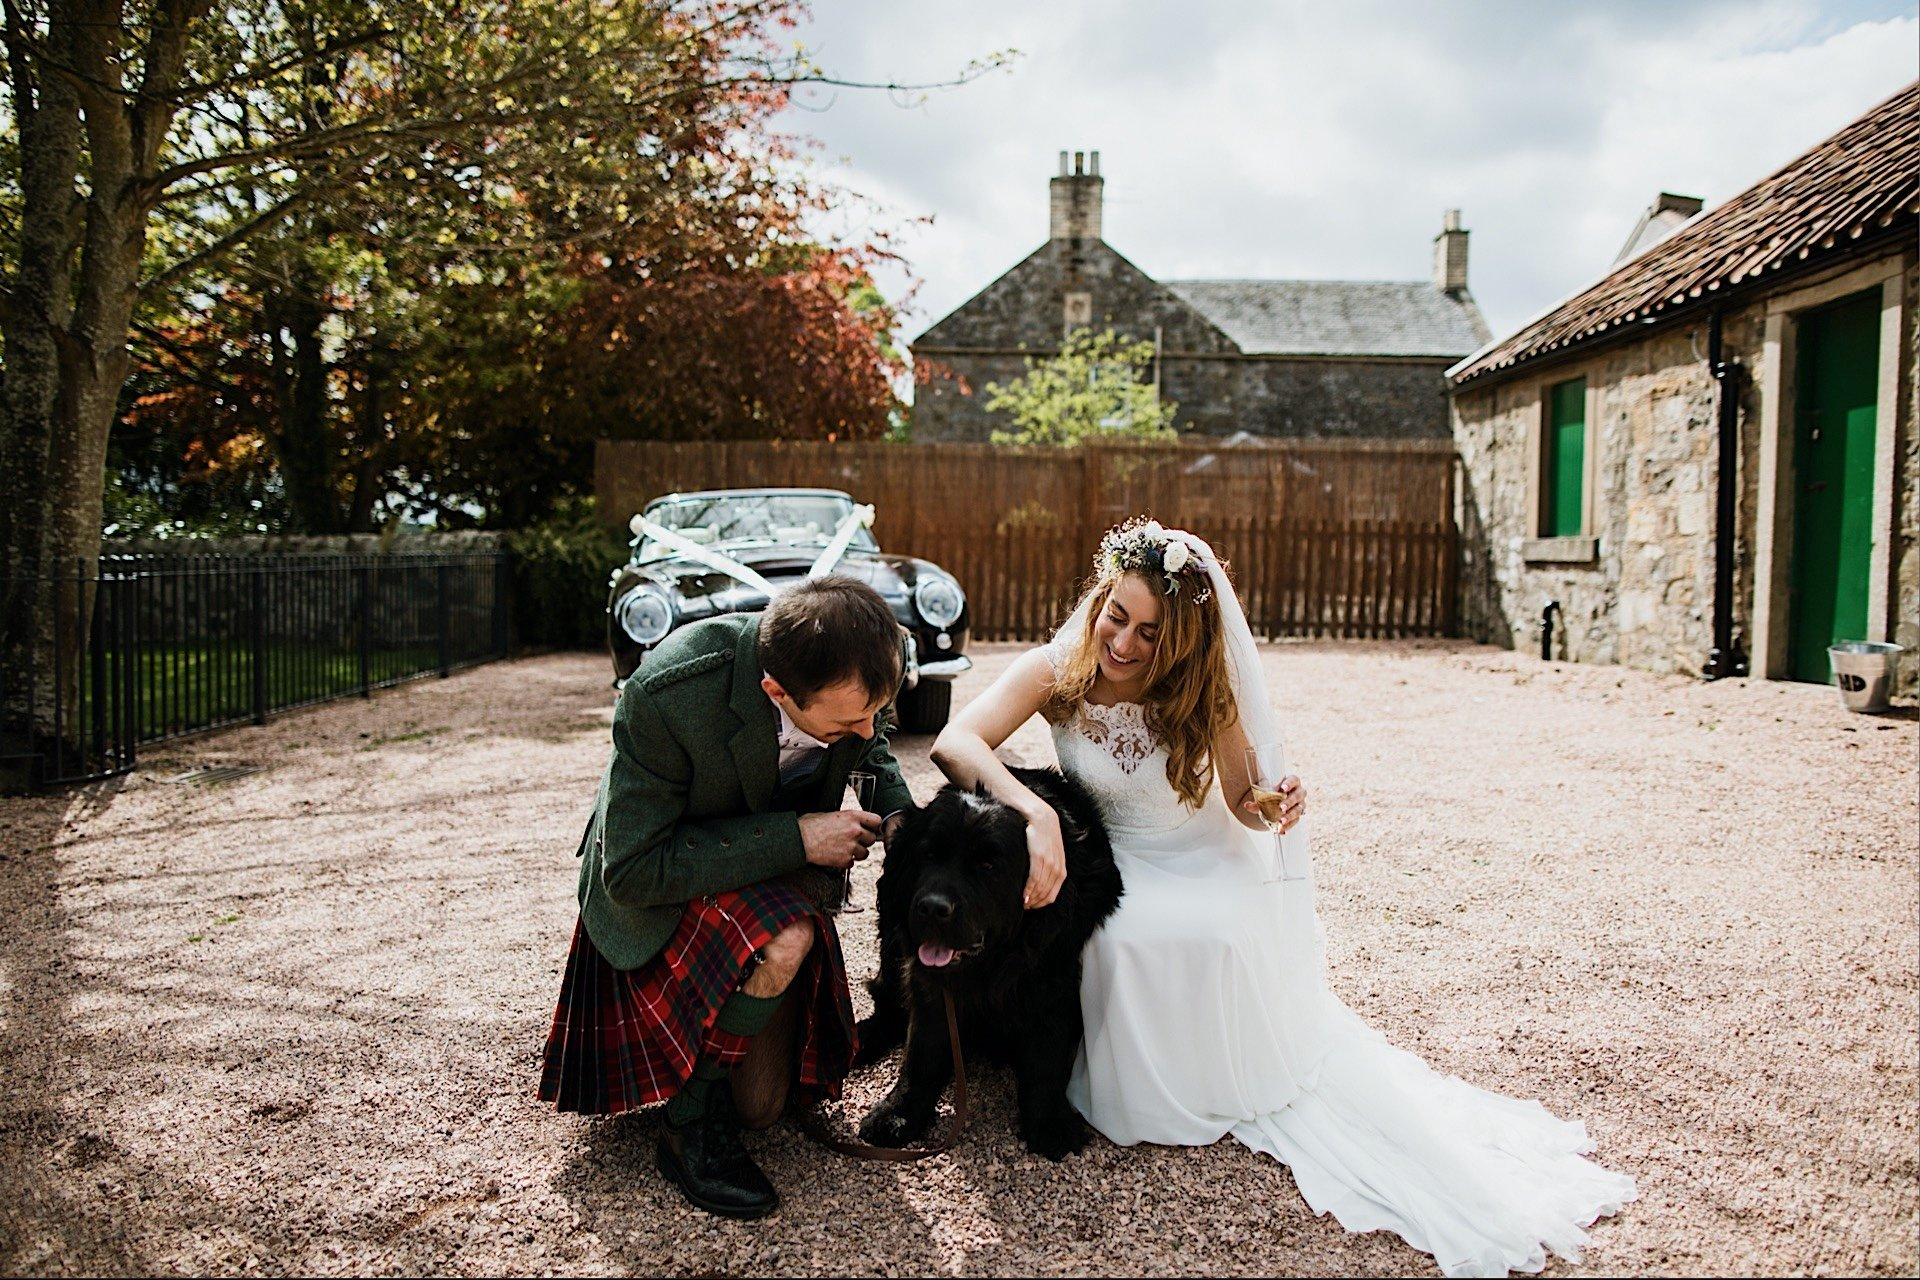 sunny bride and on cuddling day Rhynd the groom dog outside